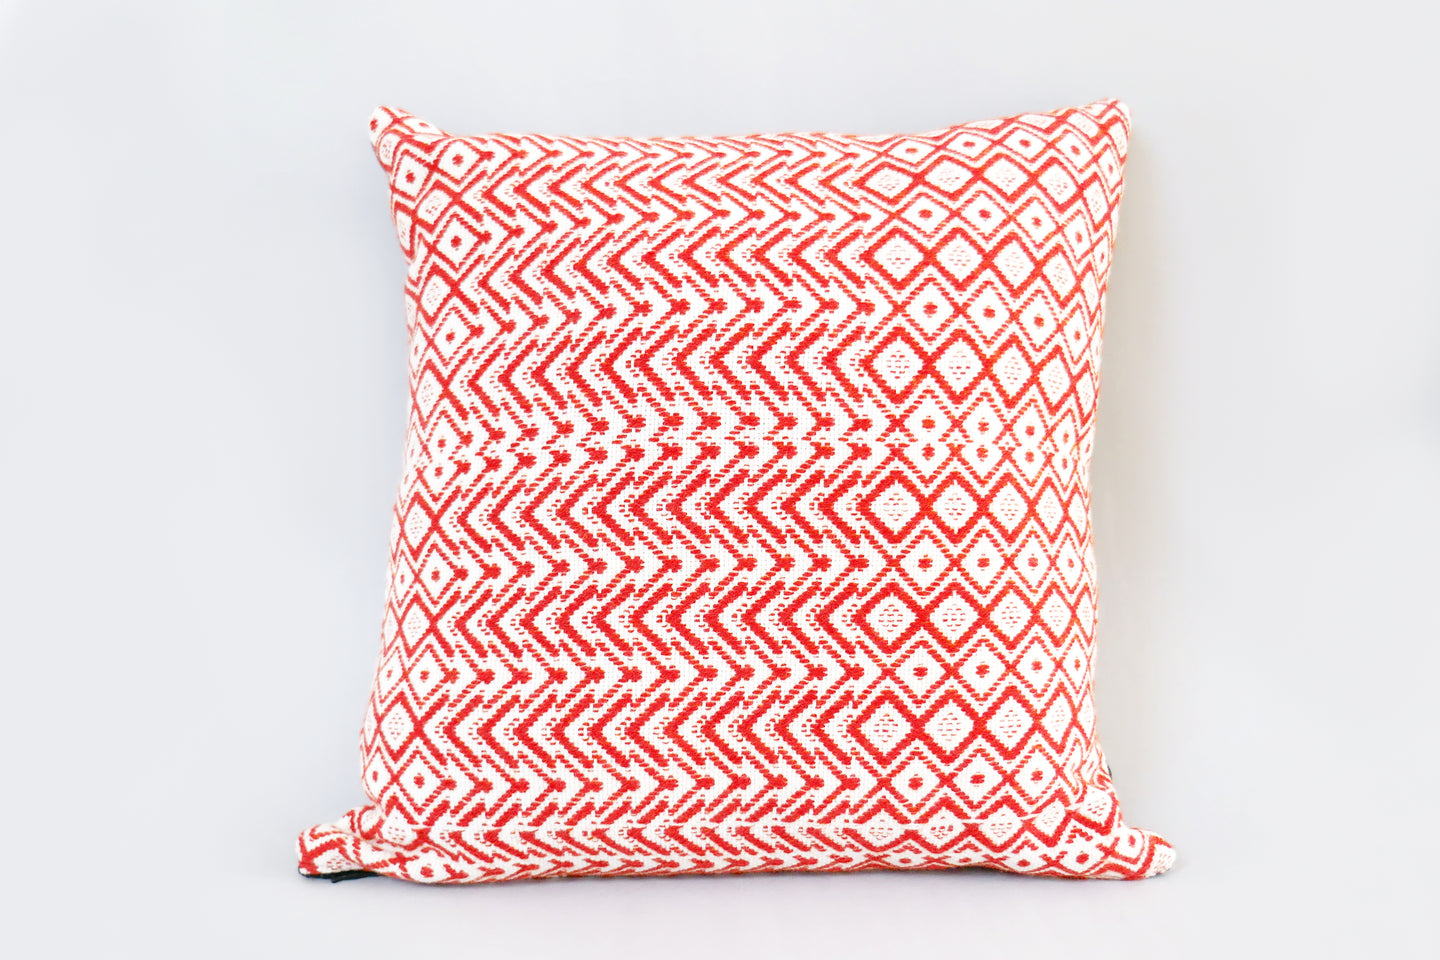 Handwoven cushion by Whelan's Weaving